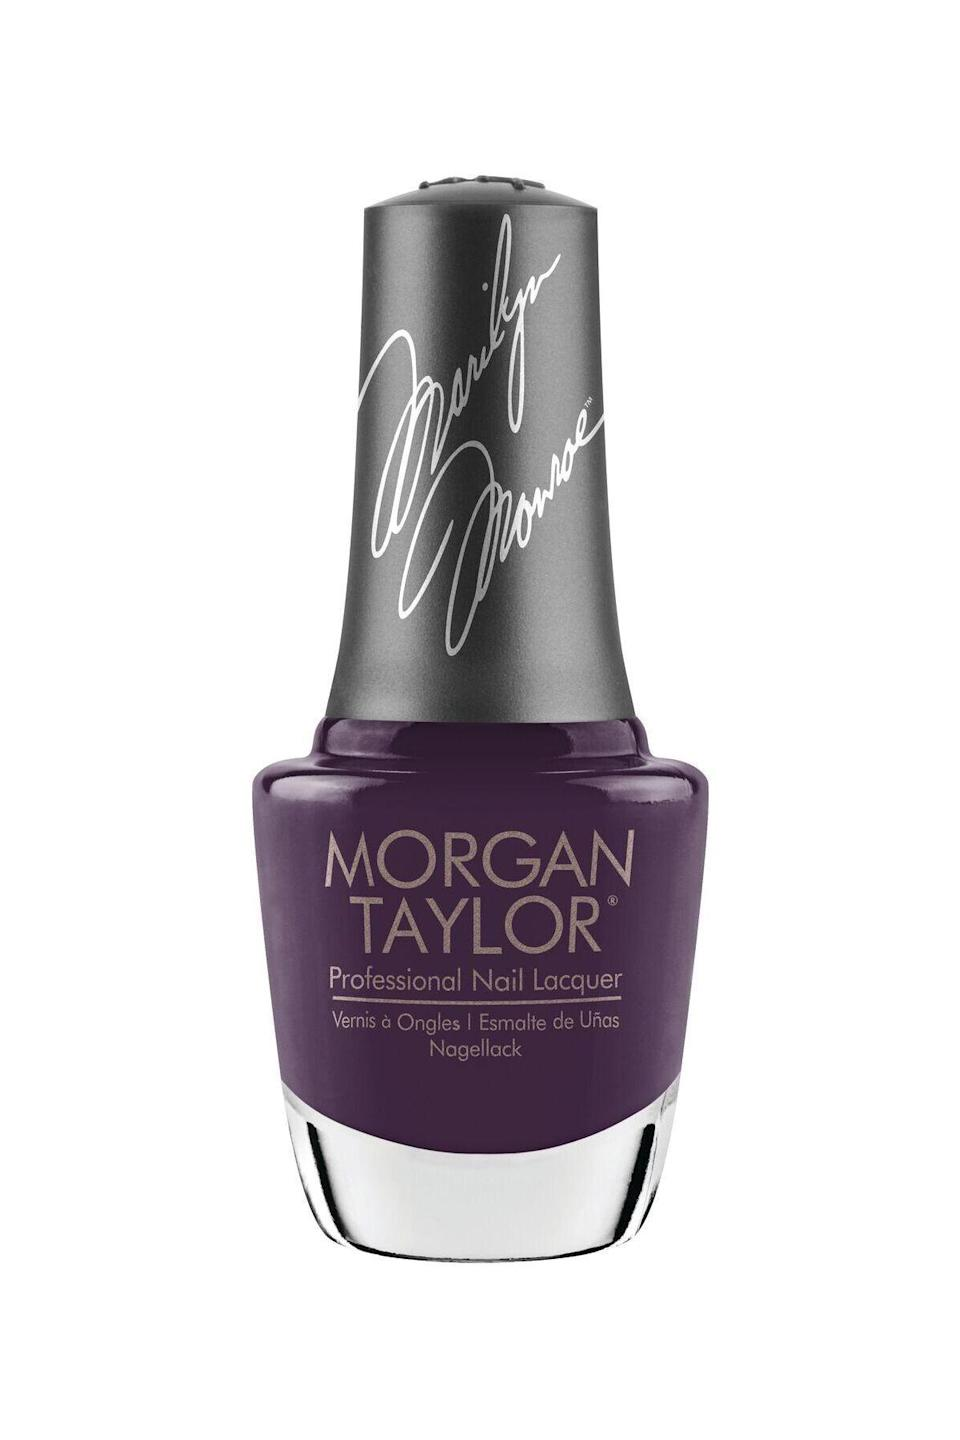 """<p><strong>Morgan Taylor</strong></p><p>ulta.com</p><p><strong>$9.50</strong></p><p><a href=""""https://go.redirectingat.com?id=74968X1596630&url=https%3A%2F%2Fwww.ulta.com%2Fforever-marilyn-nail-lacquer-collection%3FproductId%3Dpimprod2008248&sref=https%3A%2F%2Fwww.marieclaire.com%2Fbeauty%2Fnews%2Fg3310%2Fbest-nail-colors-winter%2F"""" rel=""""nofollow noopener"""" target=""""_blank"""" data-ylk=""""slk:SHOP IT"""" class=""""link rapid-noclick-resp"""">SHOP IT</a></p><p>Love eggplants? Meet your favorite vegetable in nail form. Sadly, you can't eat it—but you can wear the hell out of it. It's an opaque eggplant hue with subtle swirls of shimmer. </p>"""